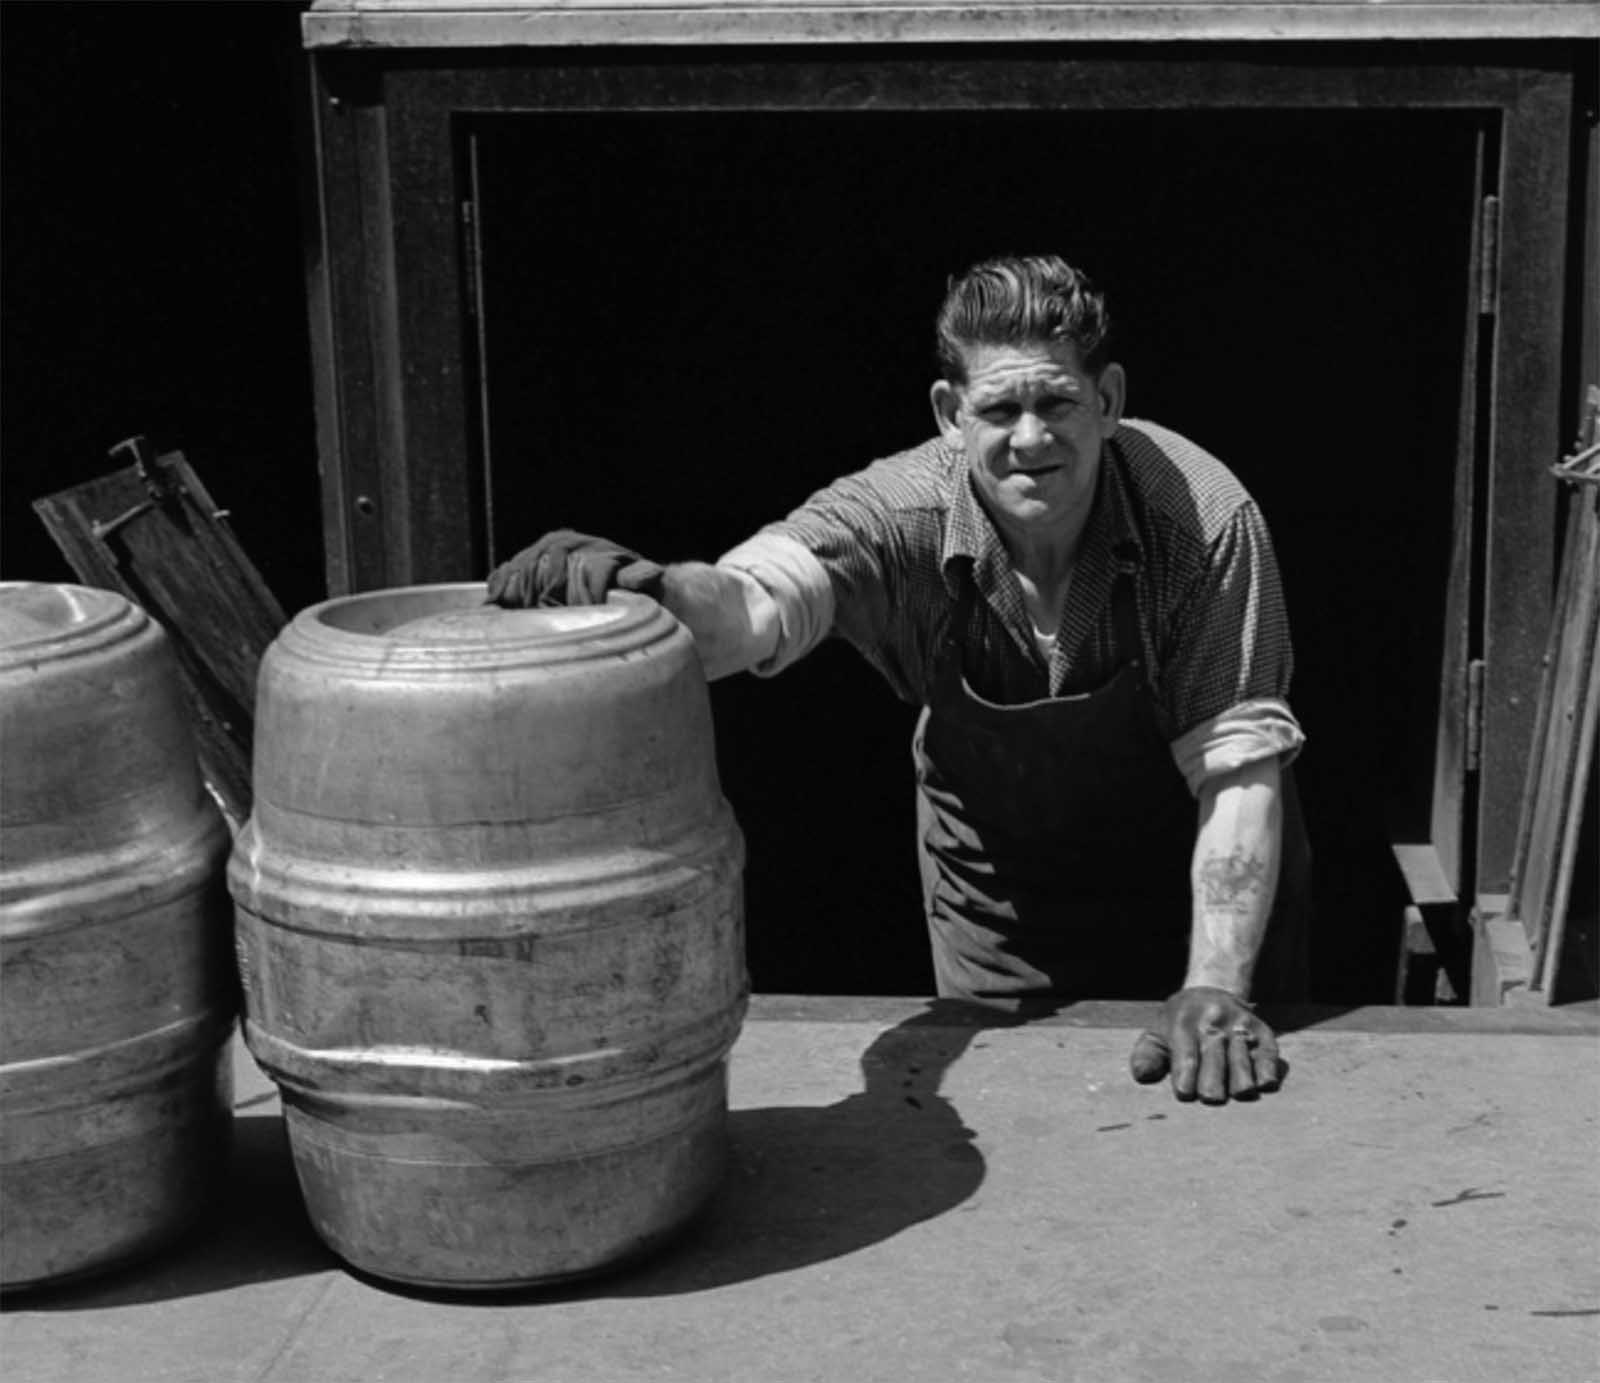 A man loads kegs of beer into a bar basement in 1953.